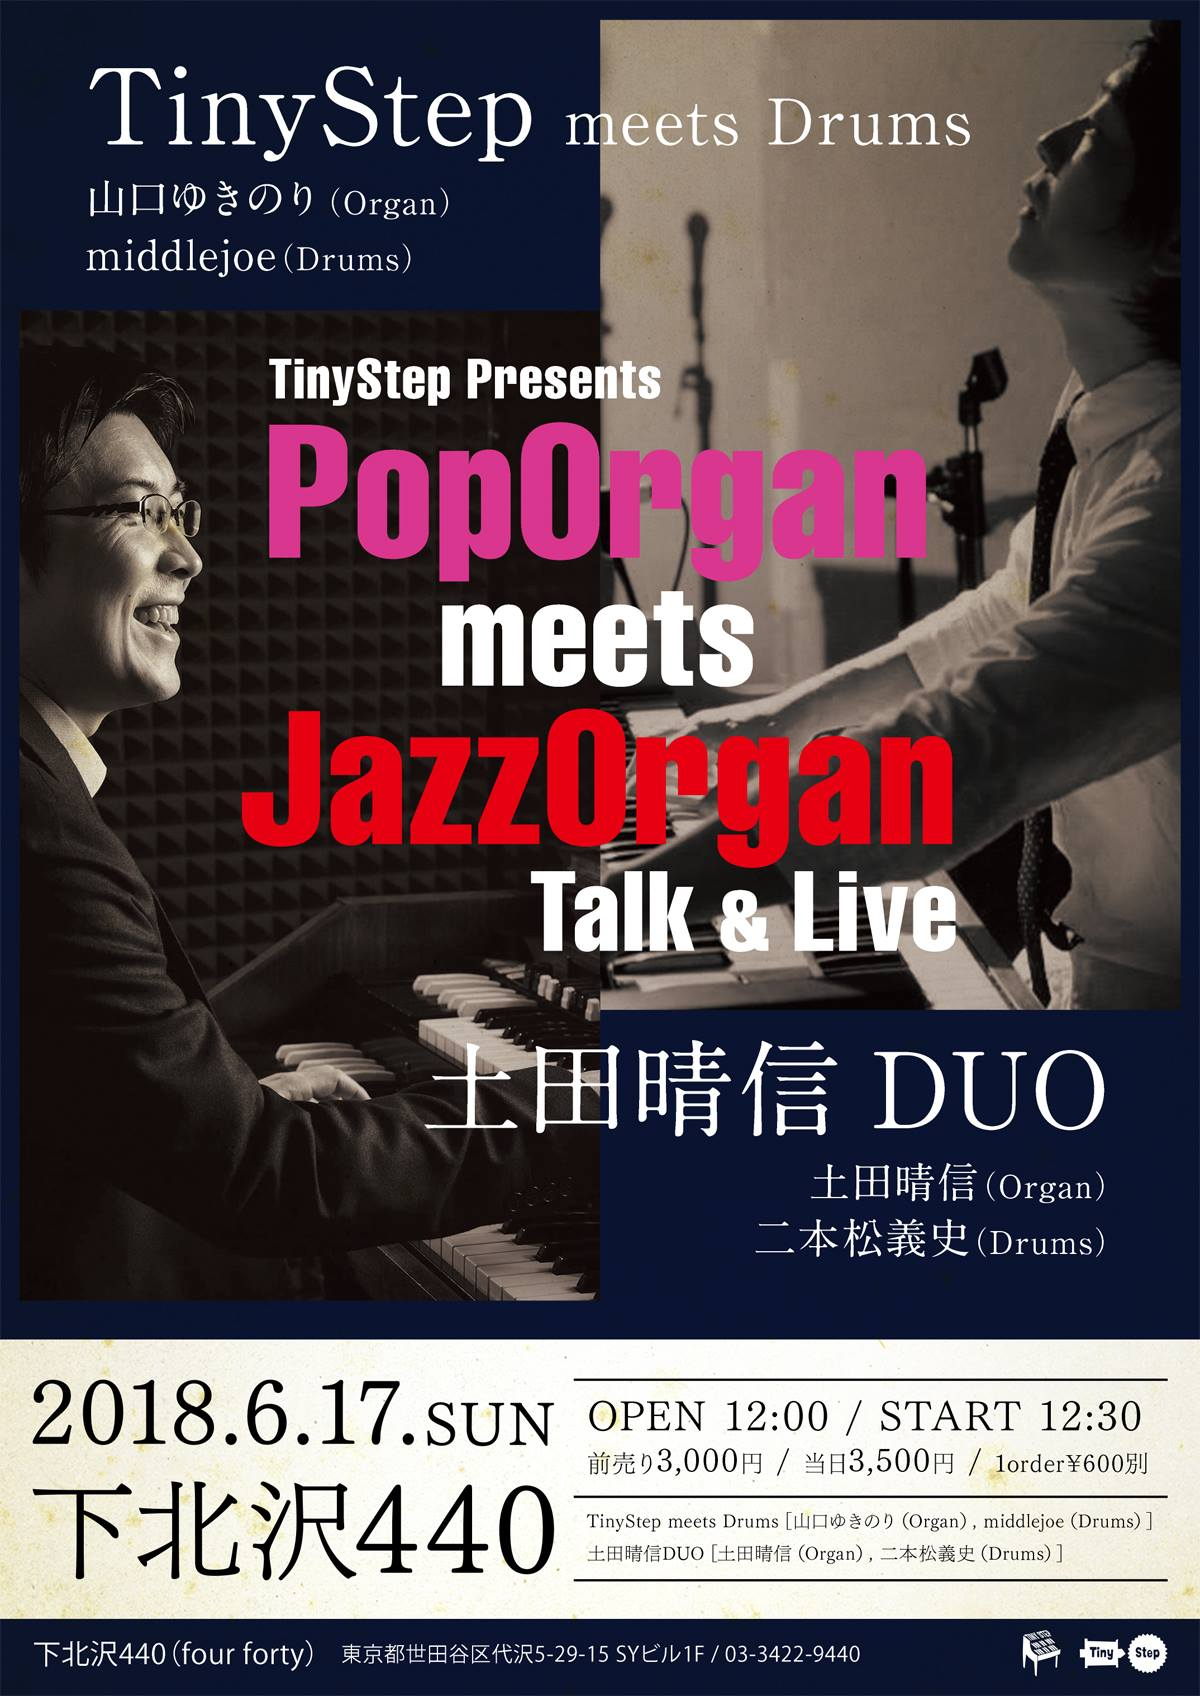 TinyStep Presents「PopOrgan meets JazzOrgan」